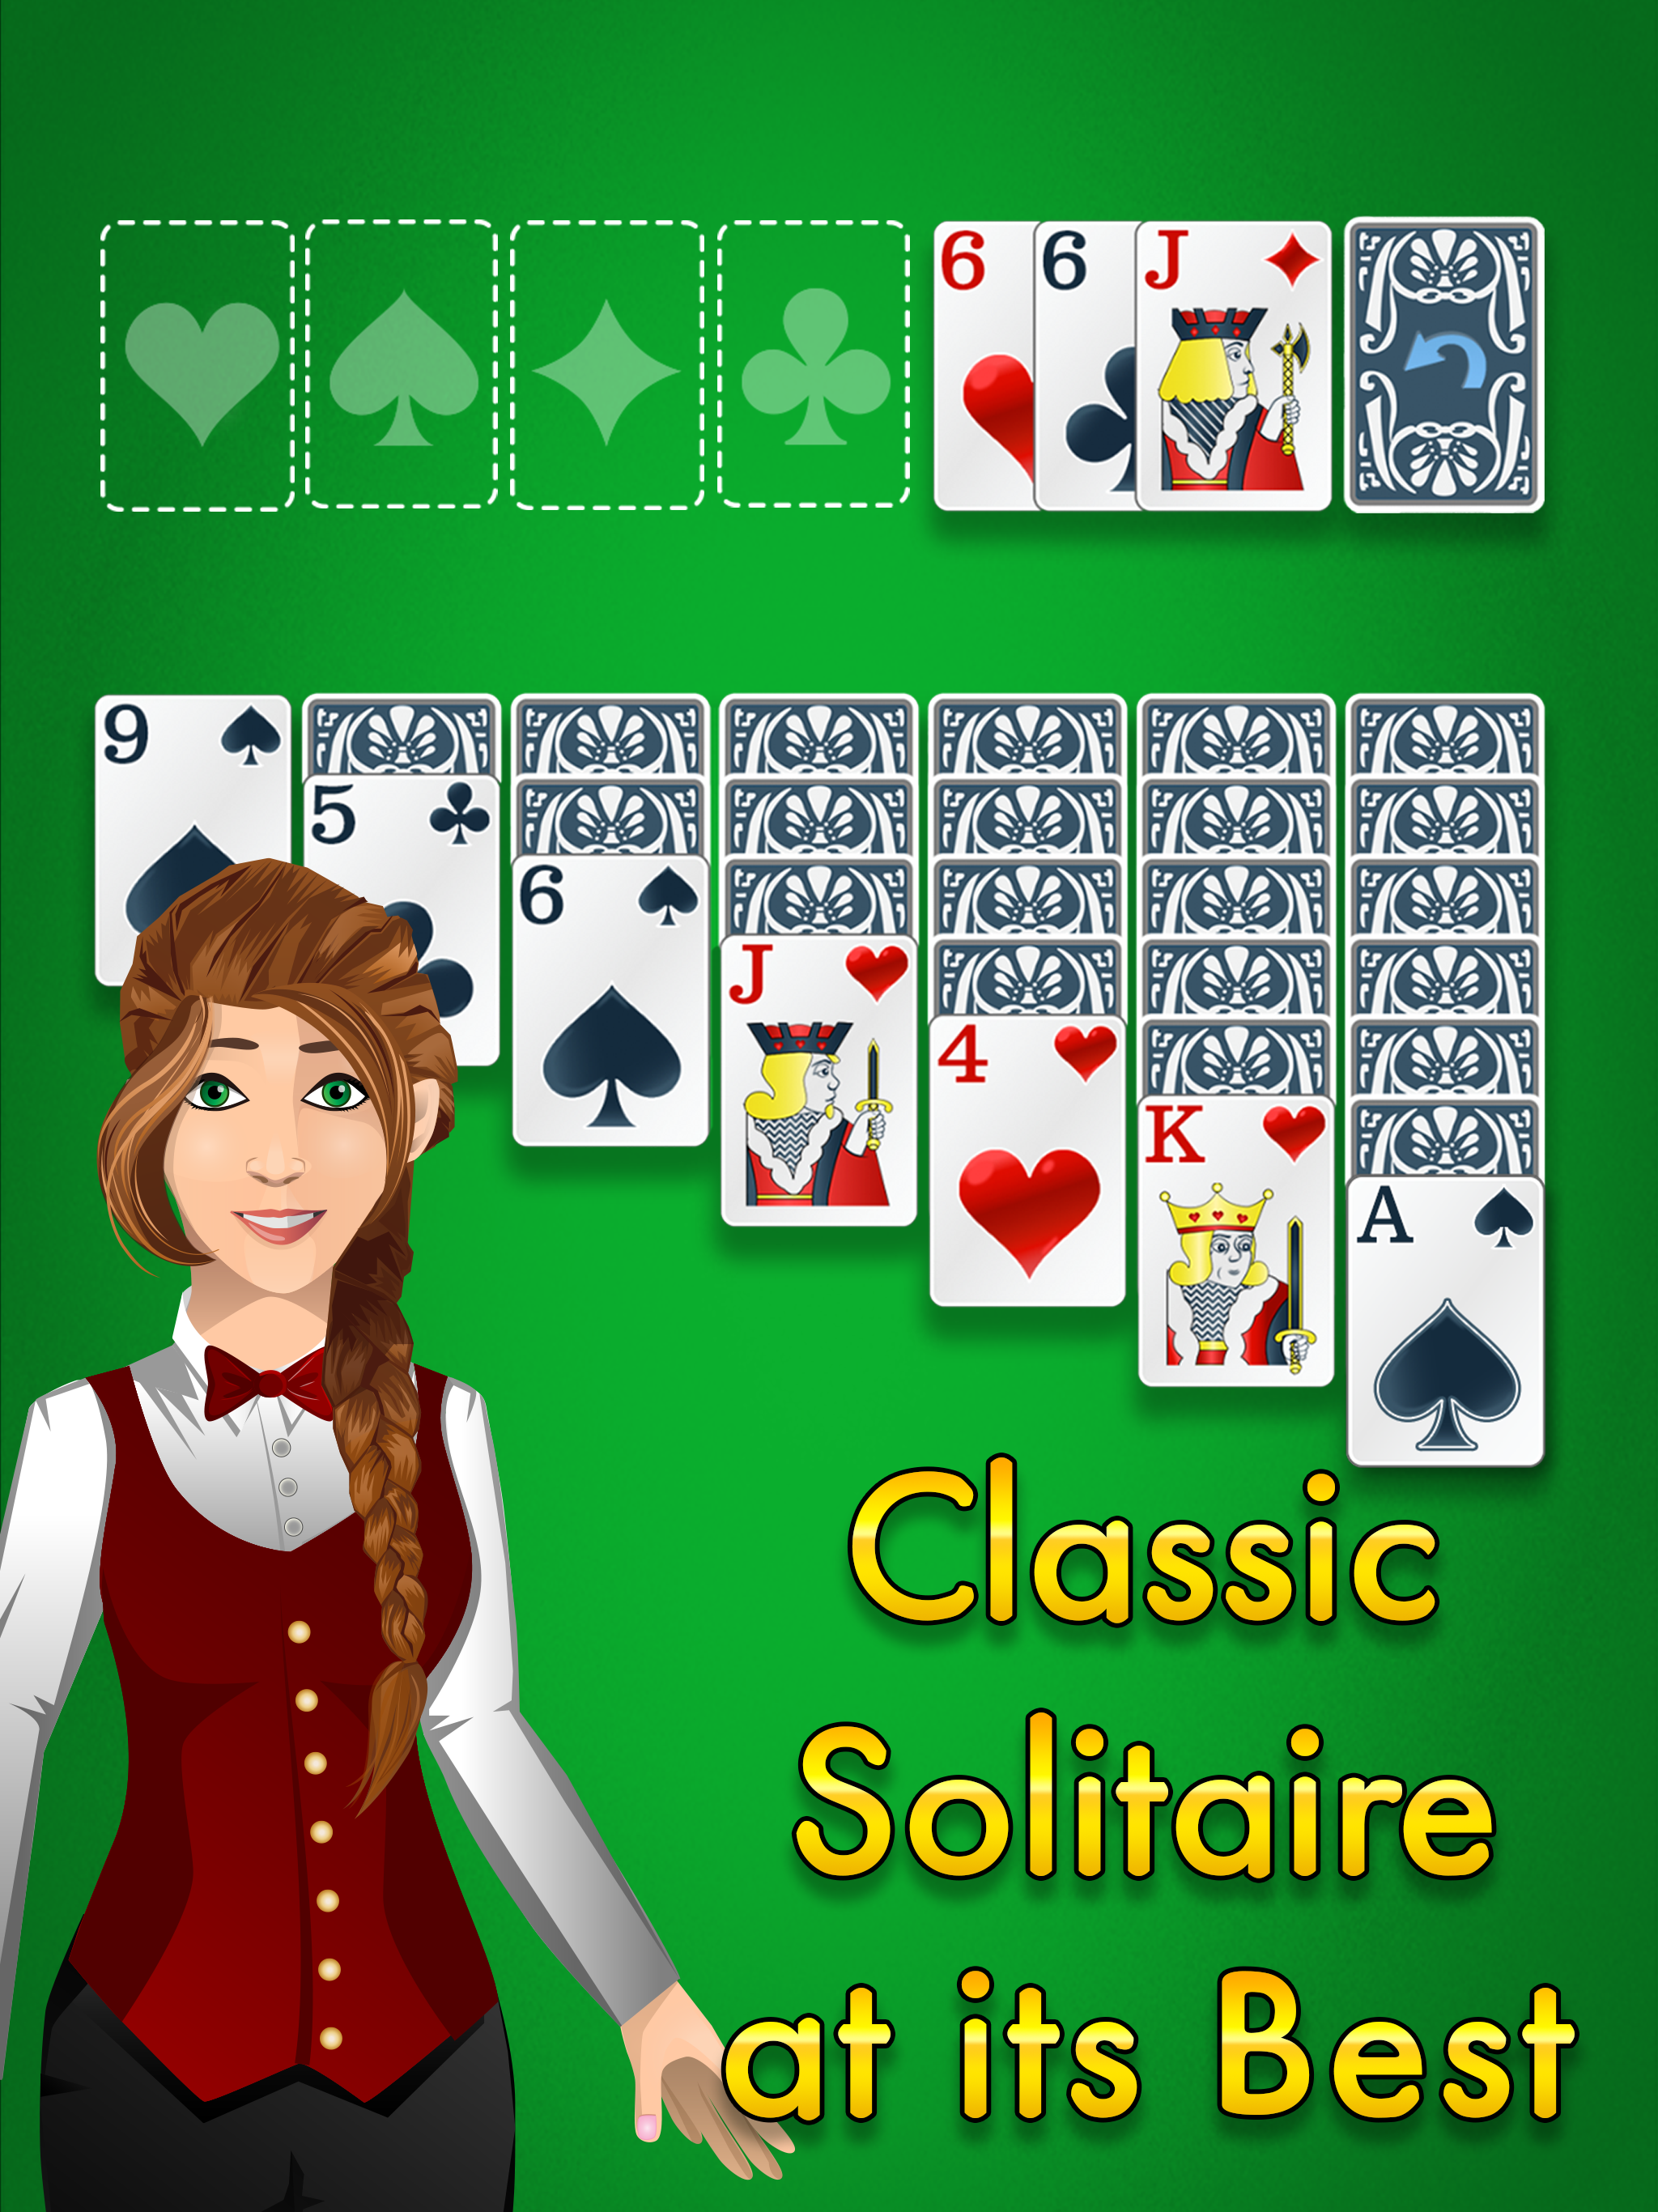 Glowing Eye Games presents Solitaire Classic Gold for your